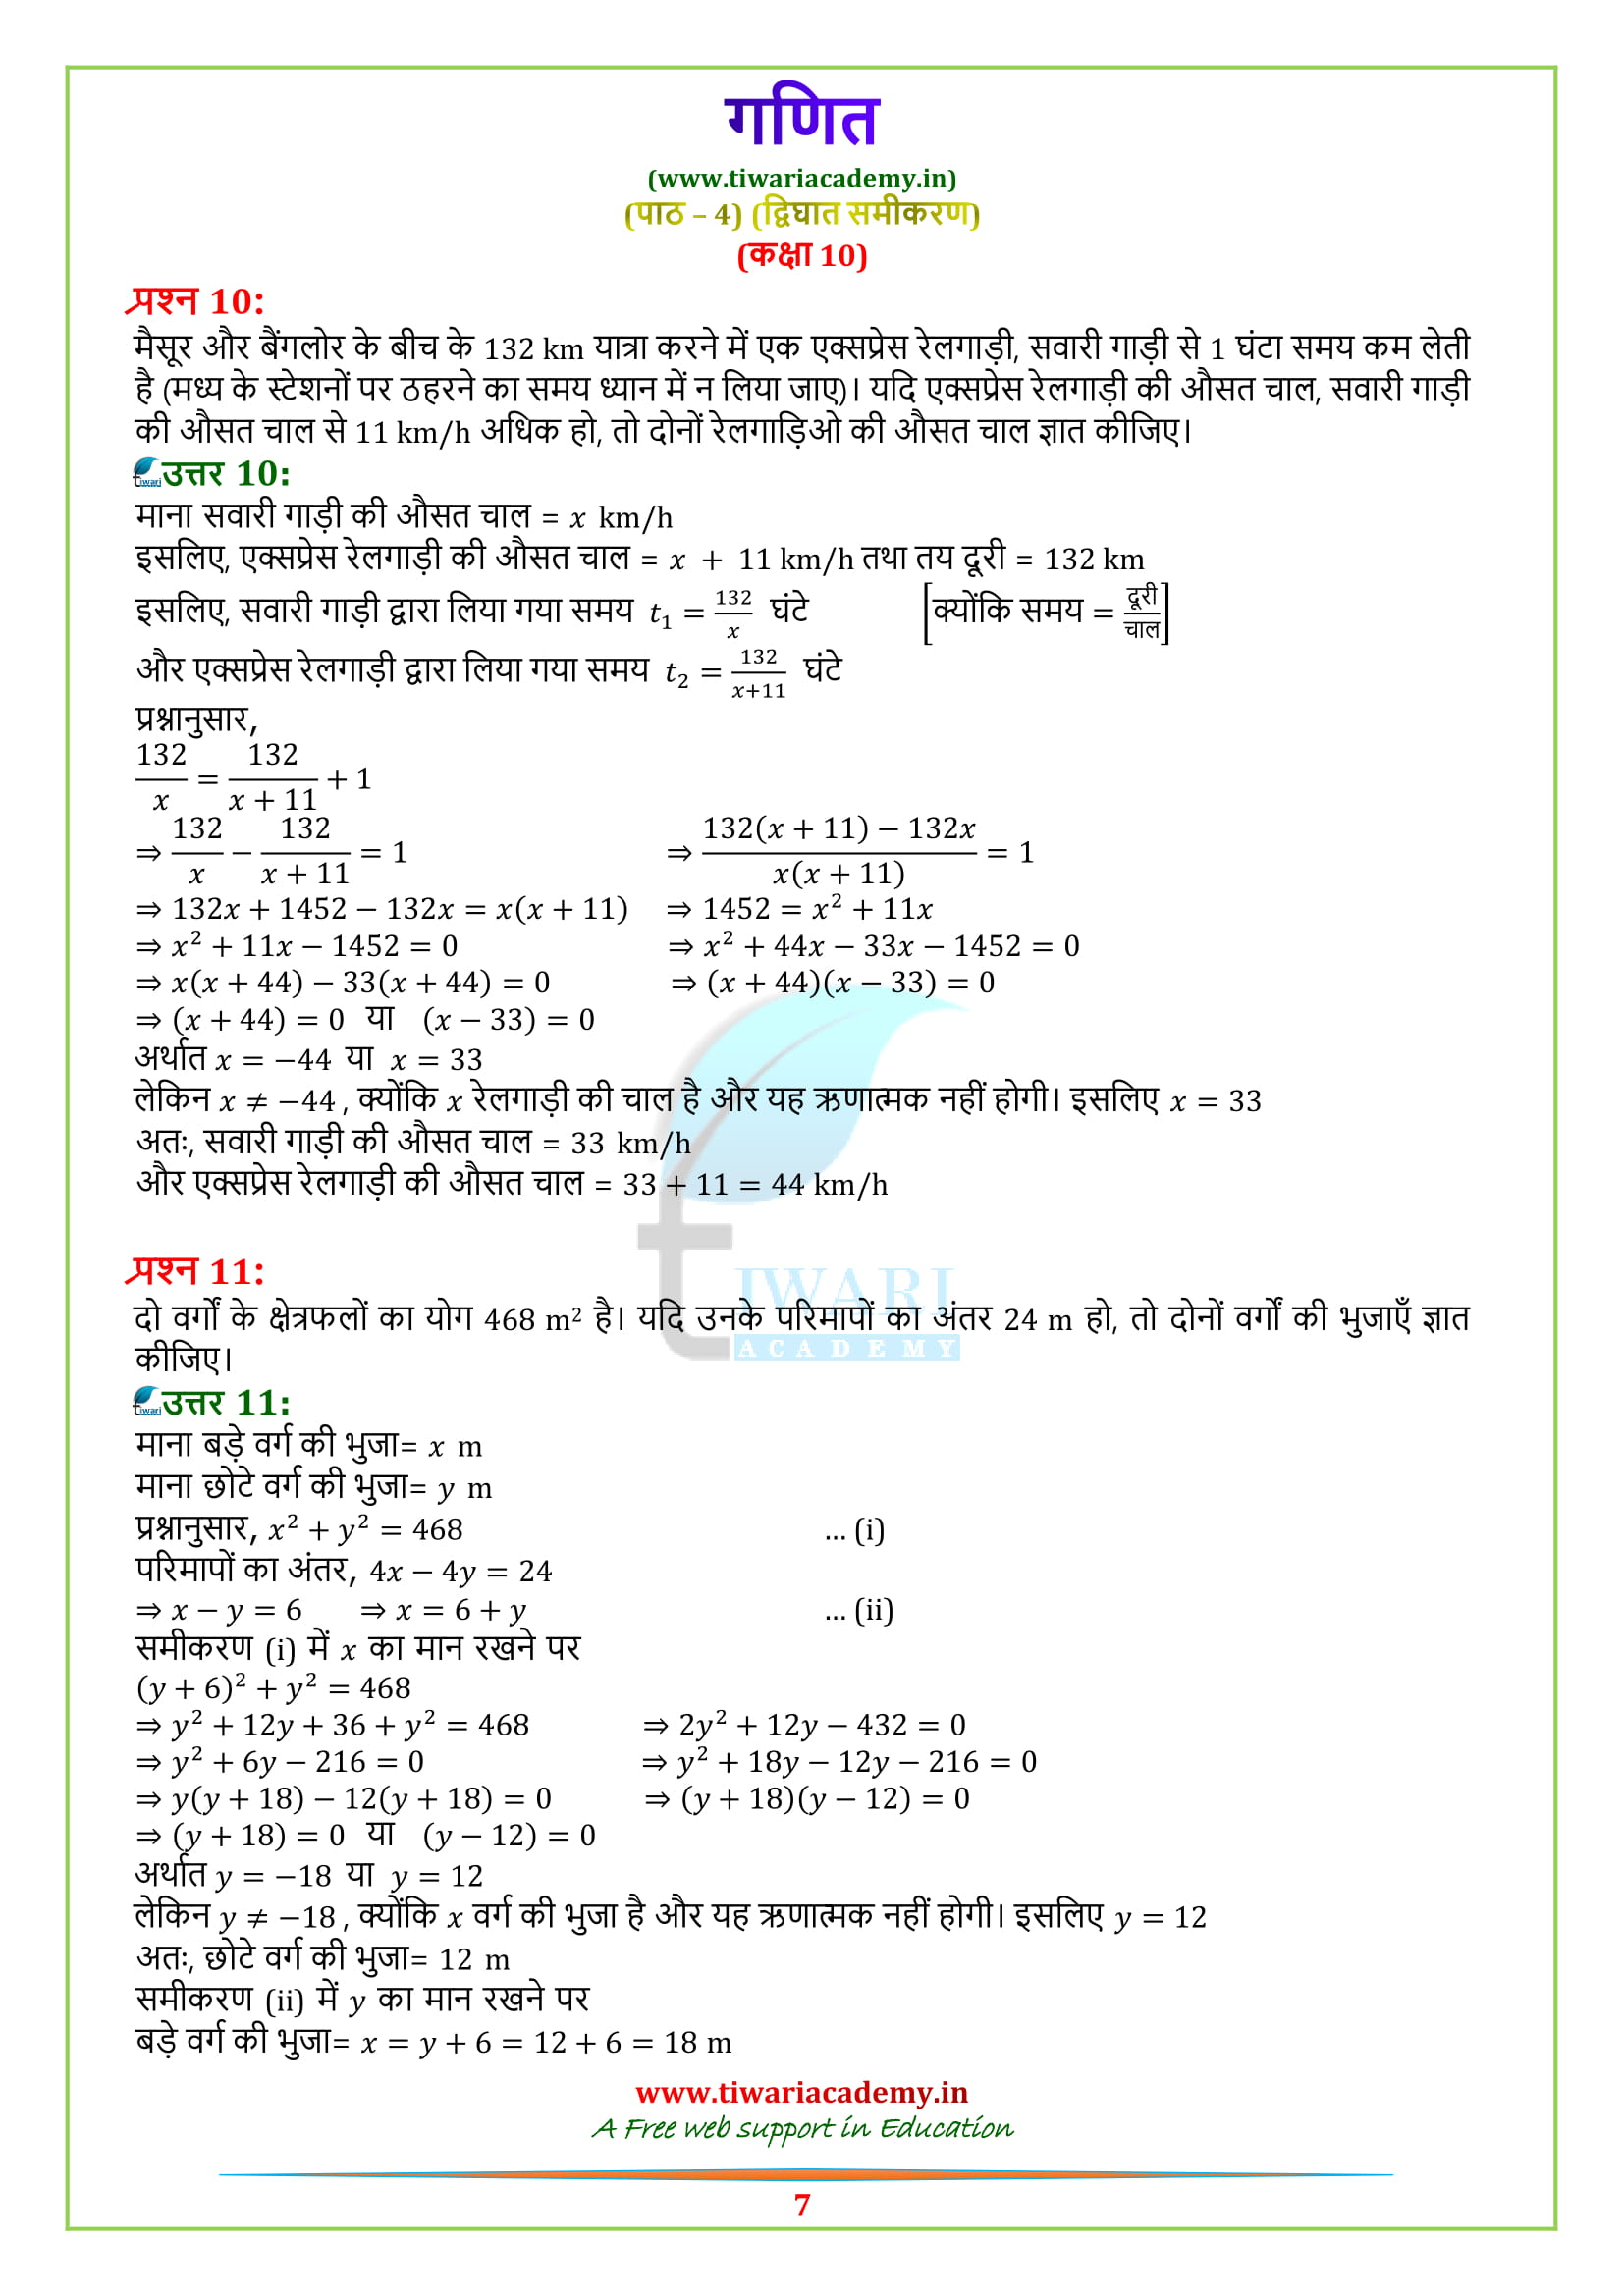 10 Maths chapter 4 exercise 4.3 solutions all questions